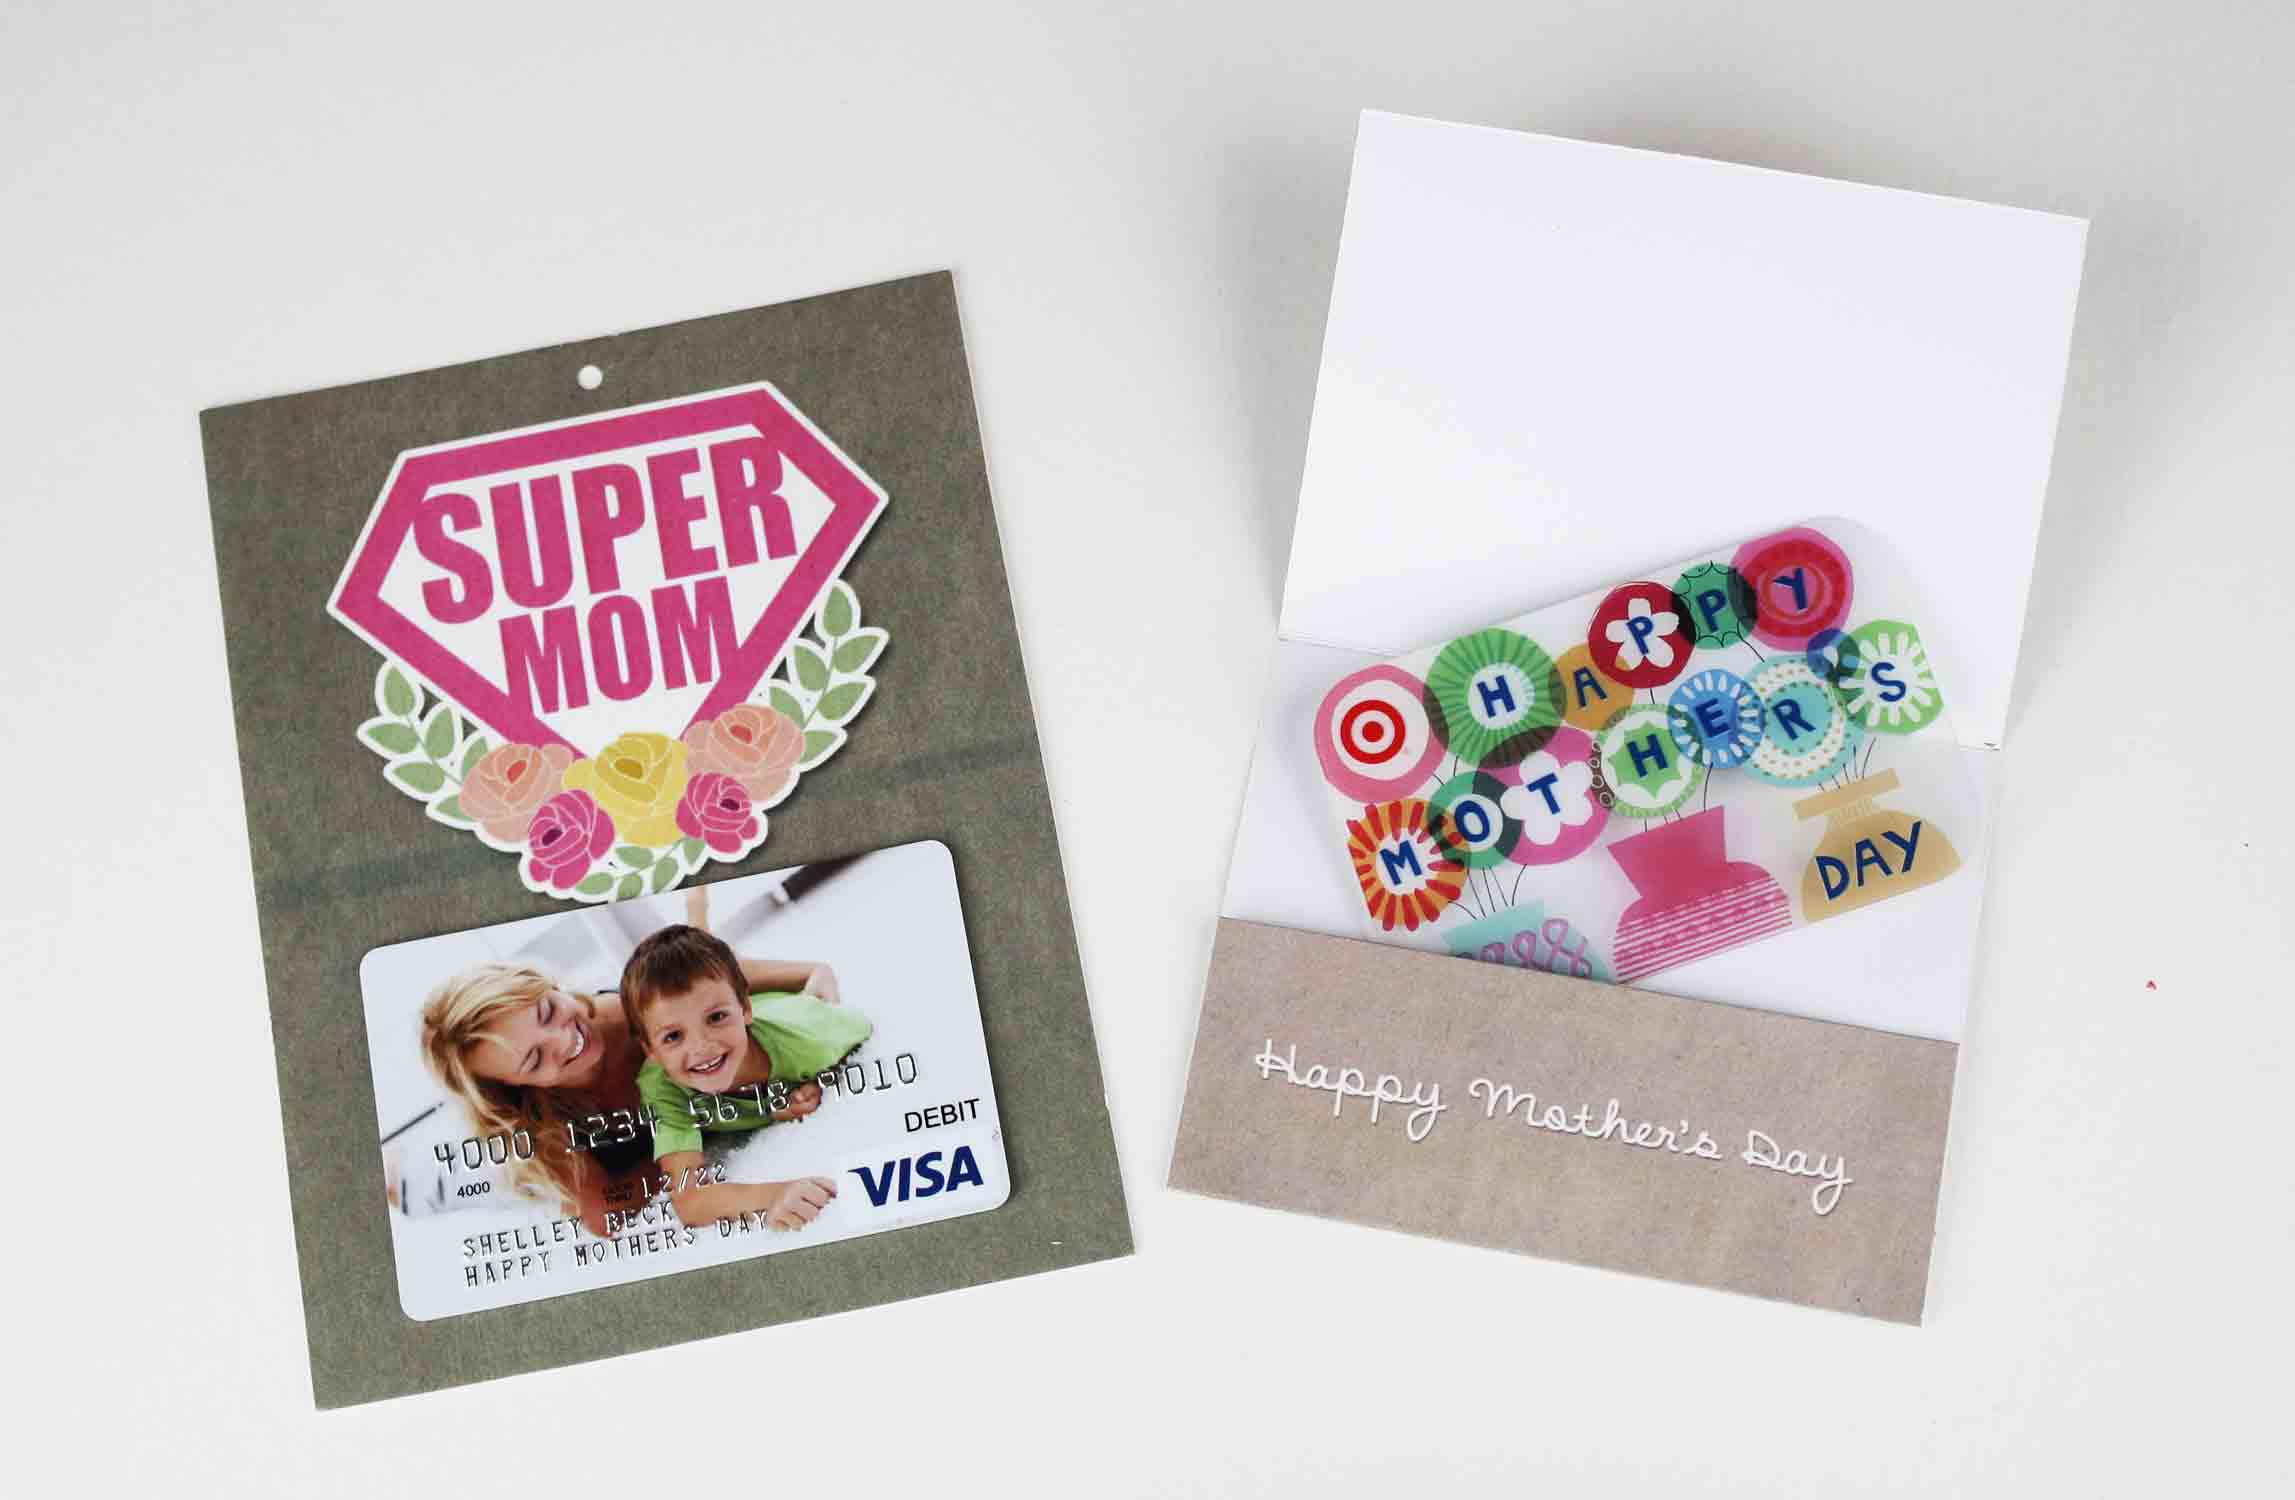 put gift card inside holder